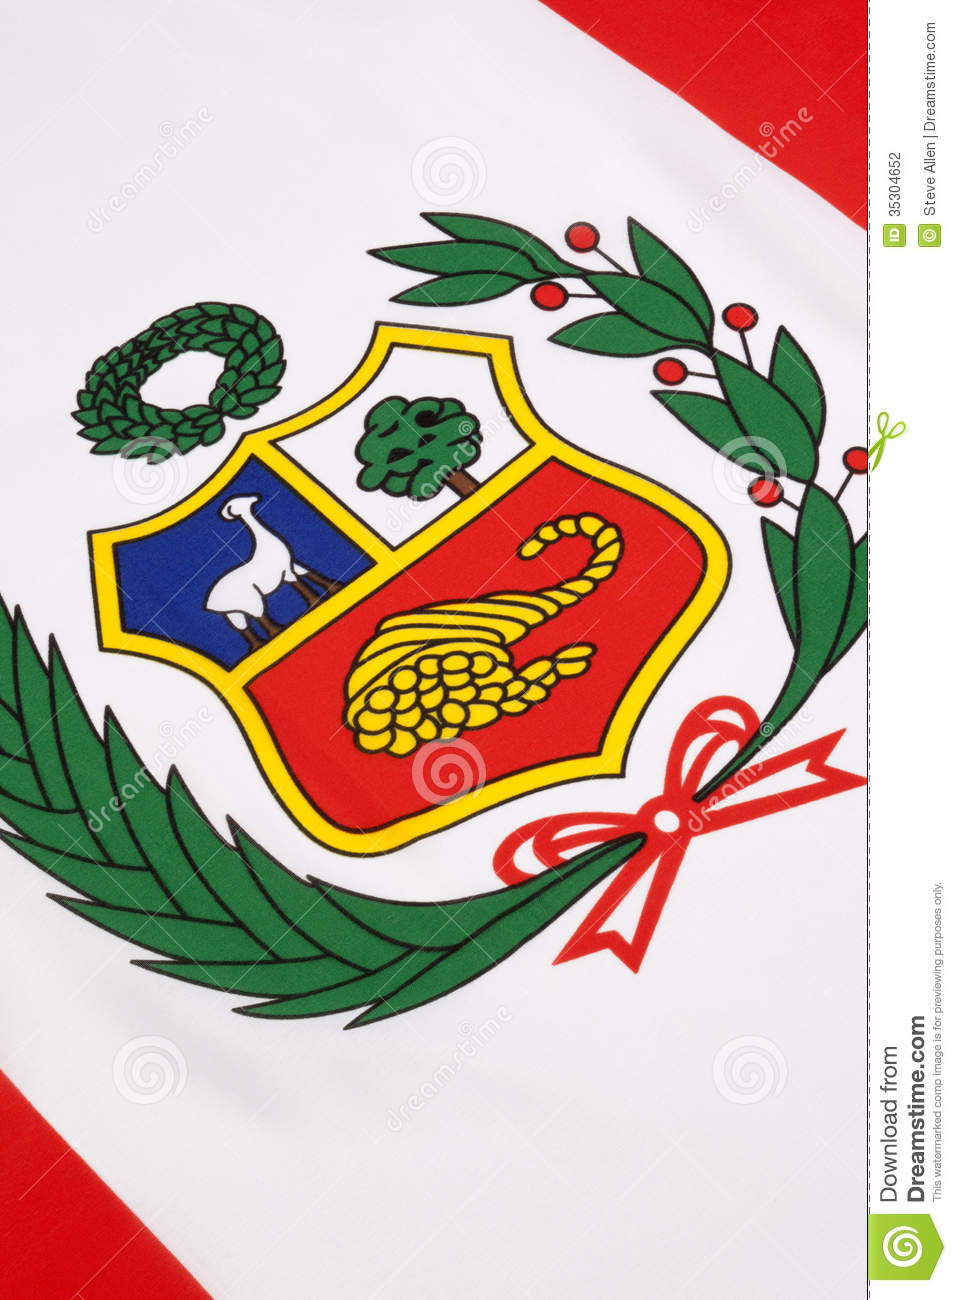 Detail On The Flag Of Peru Stock Photography - Image: 35304652